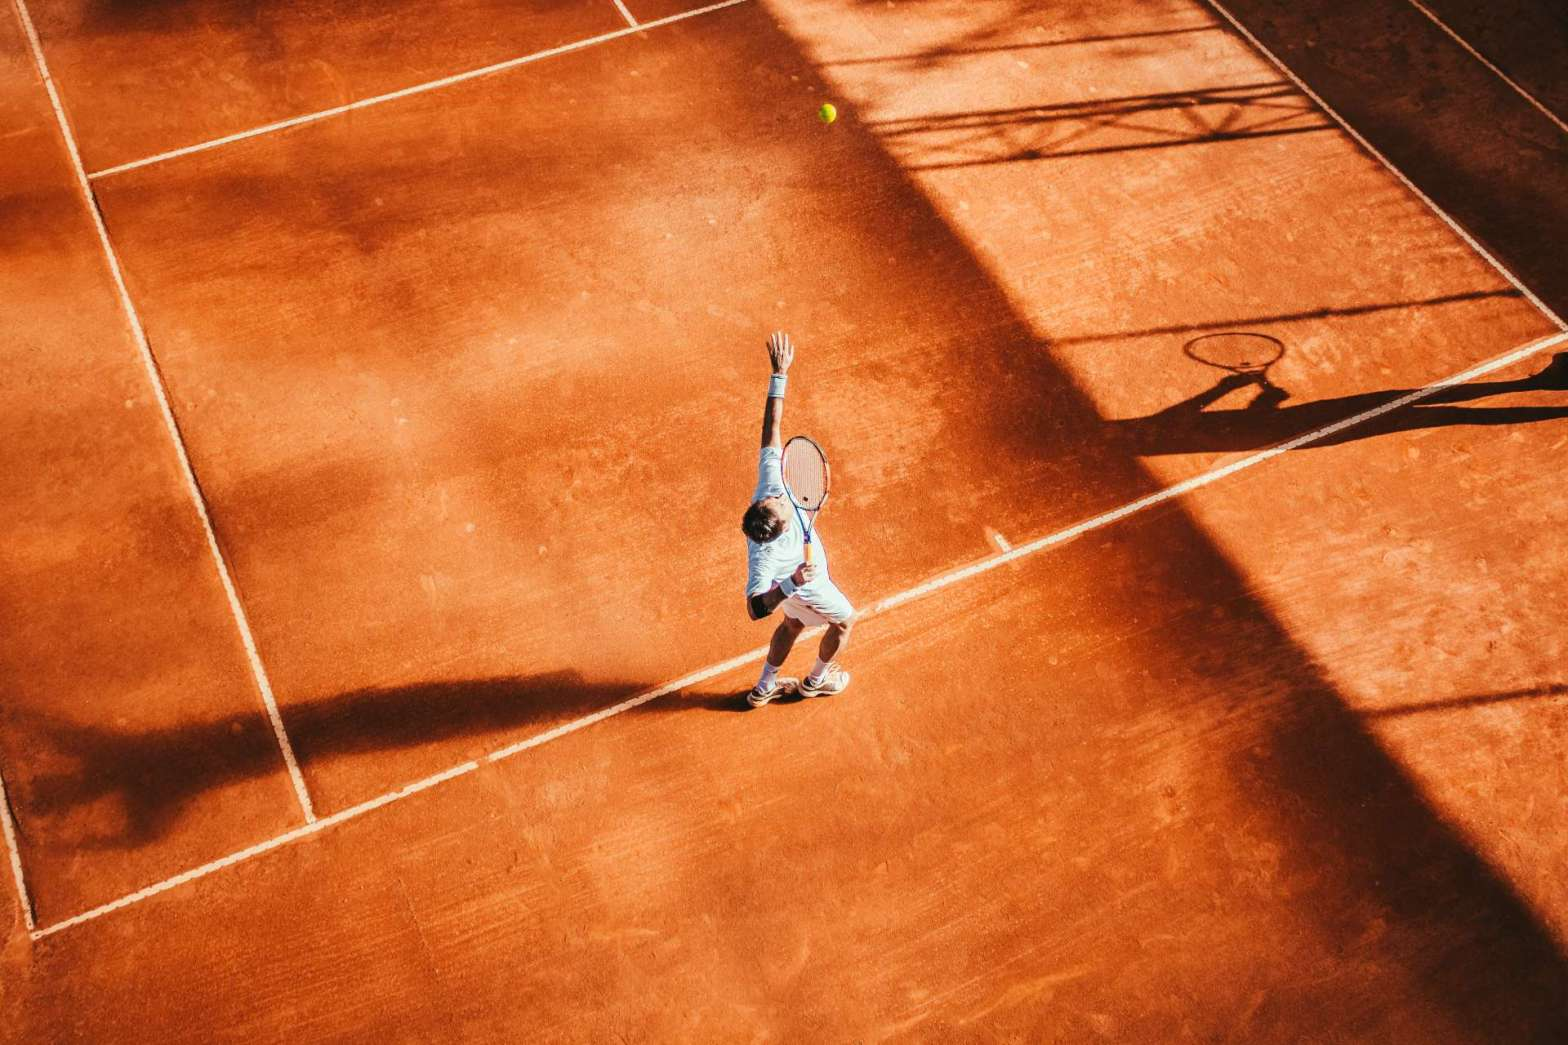 Tennis player on red clay court